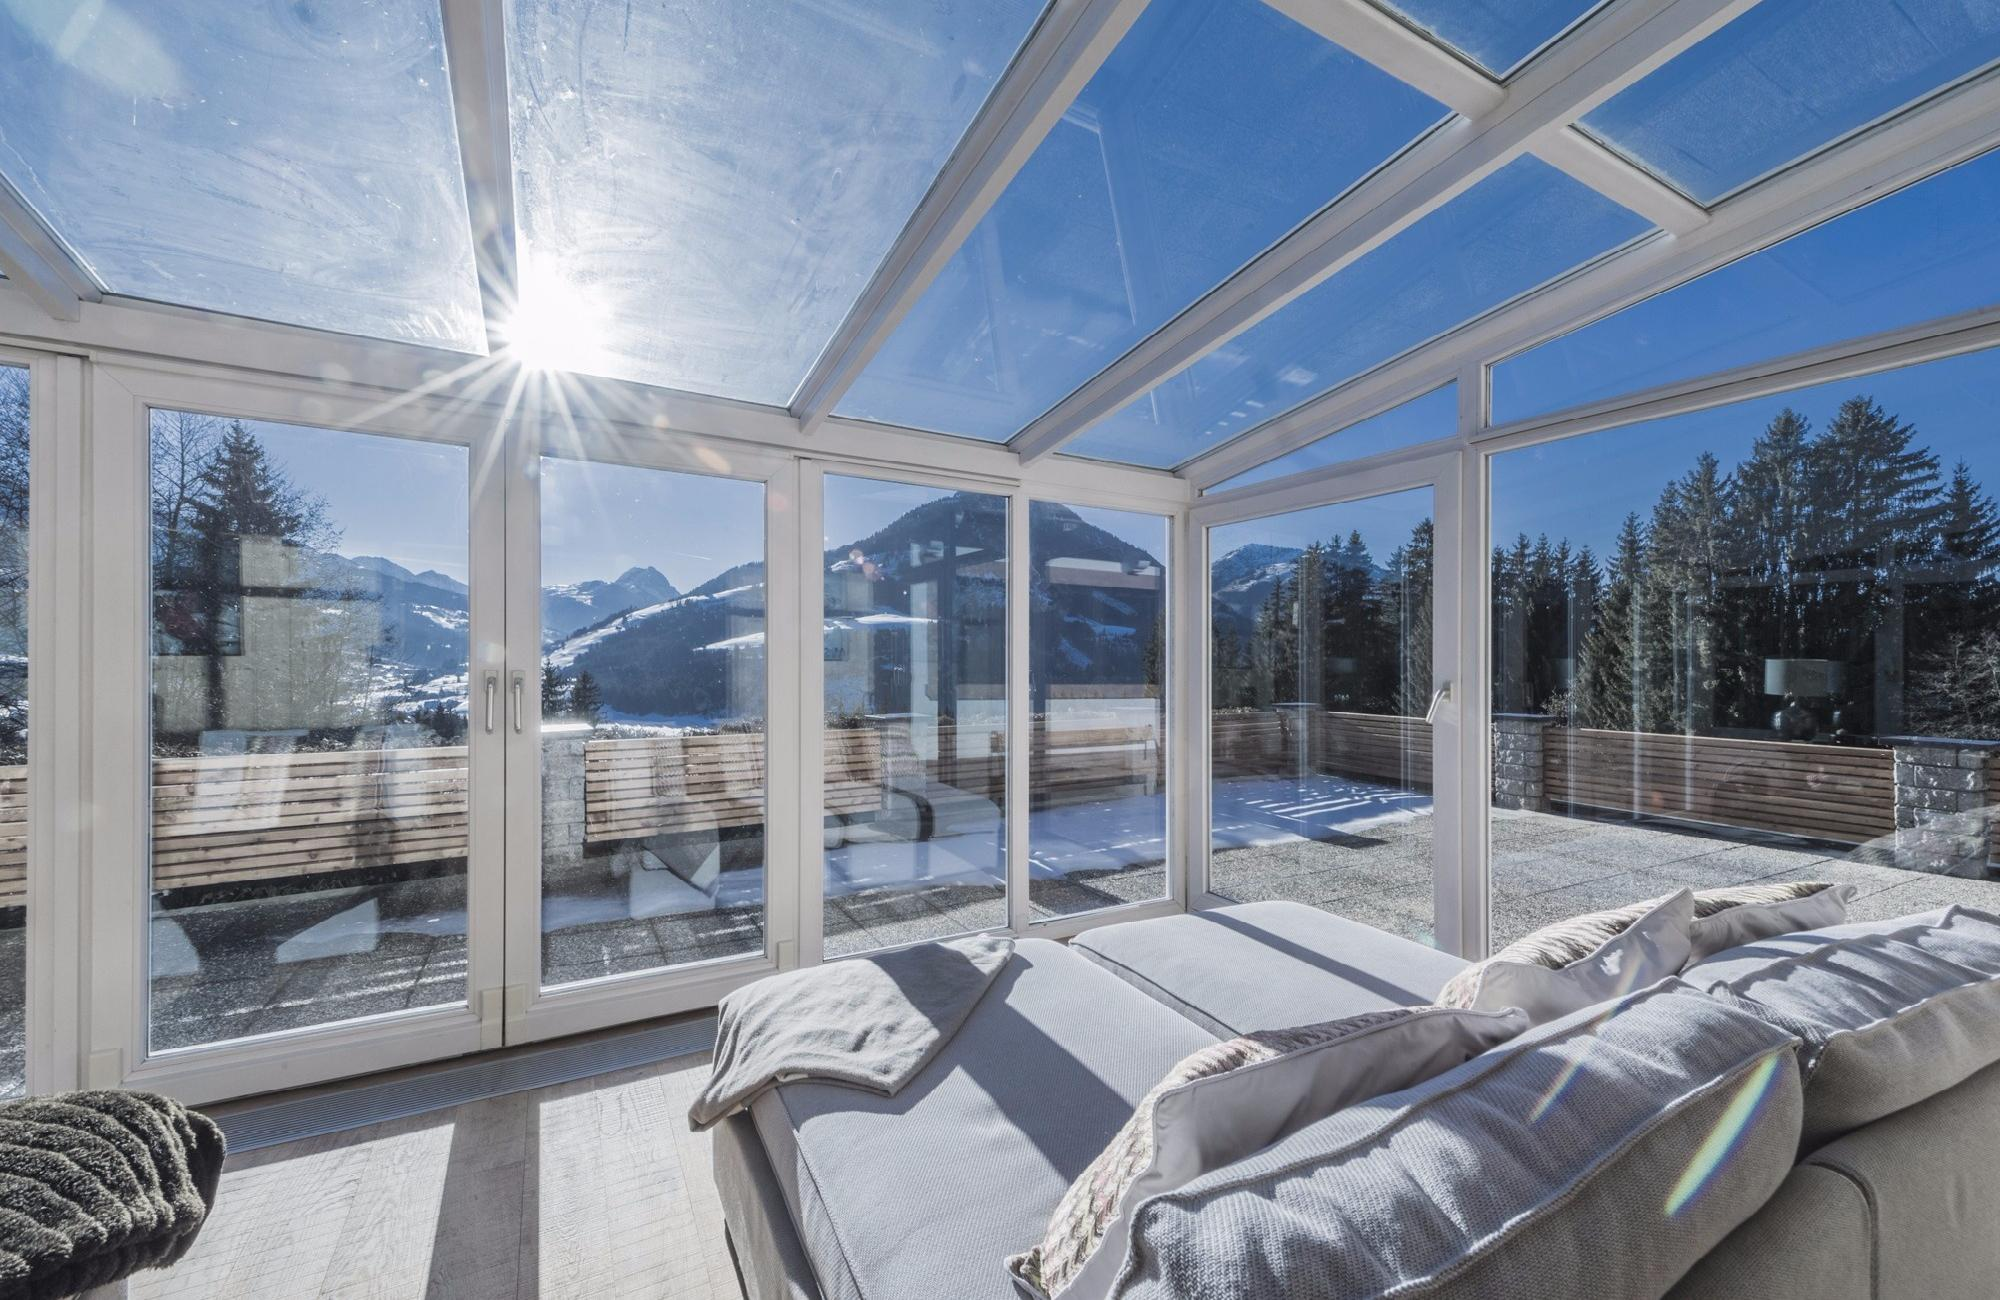 Bienes Raíces en Austria - `Second Home` in Austria with unobstructed view